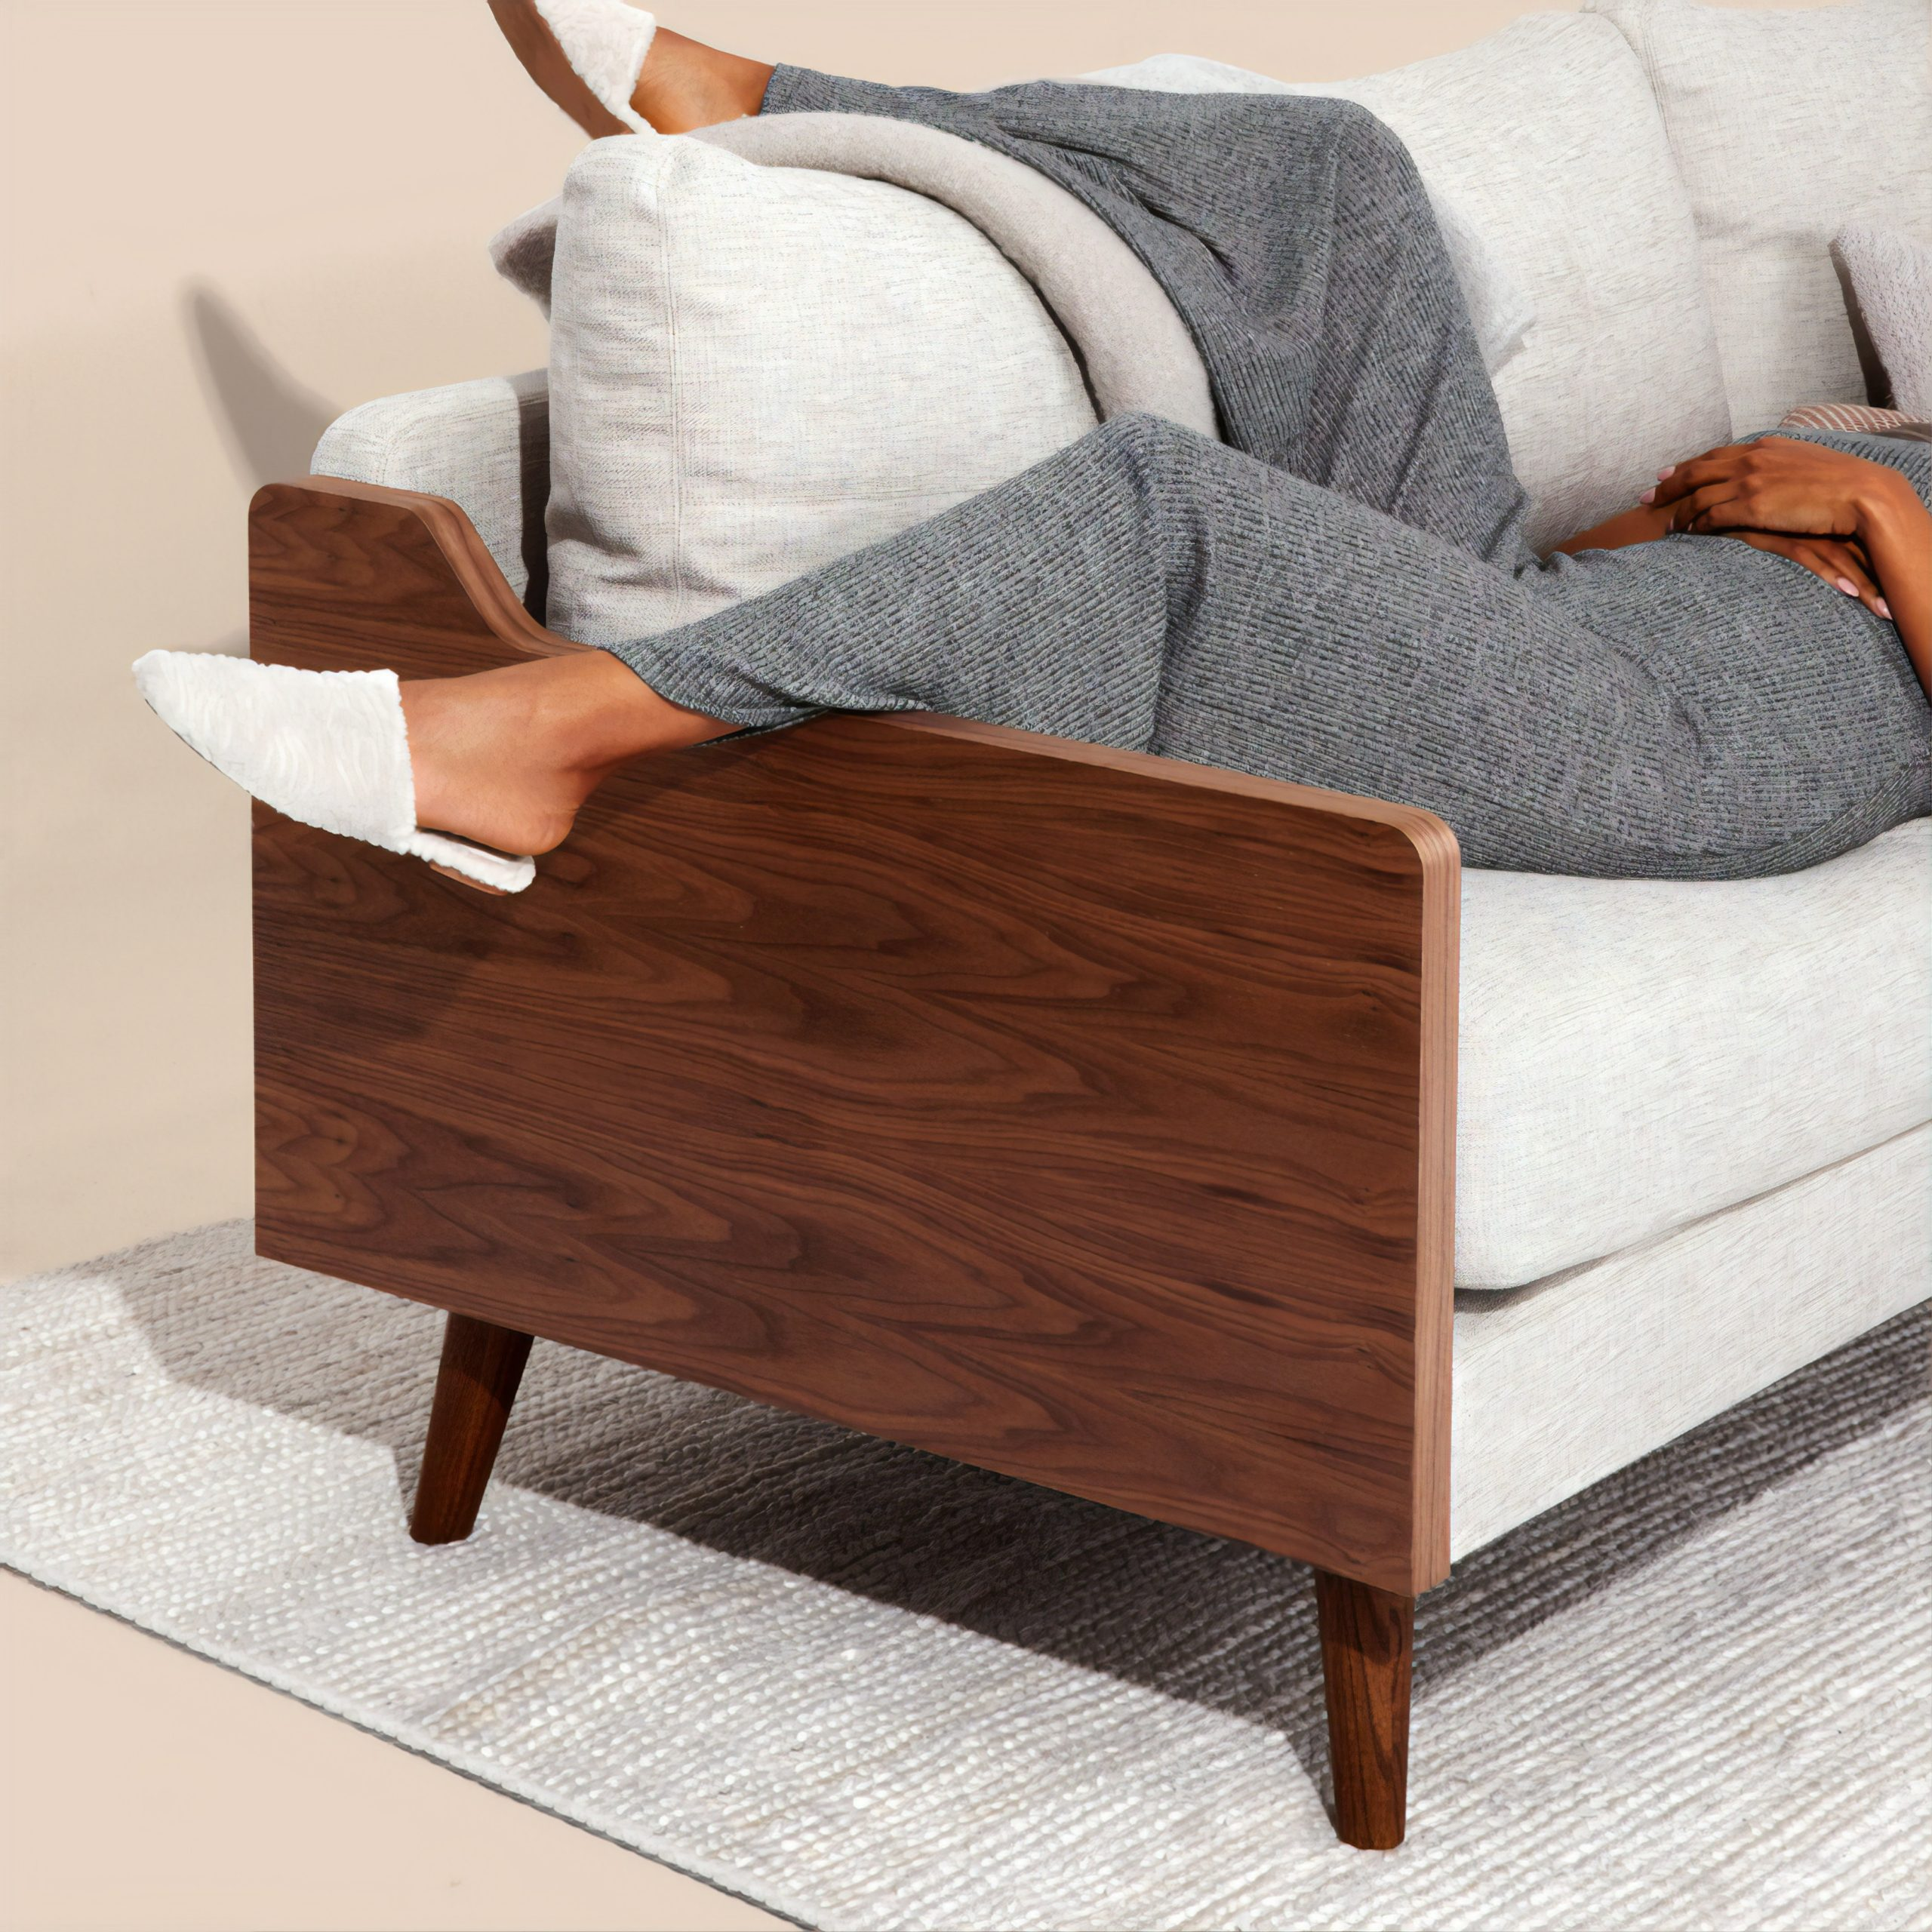 Women with brown skin lounging on a couch in comfortable clothes.